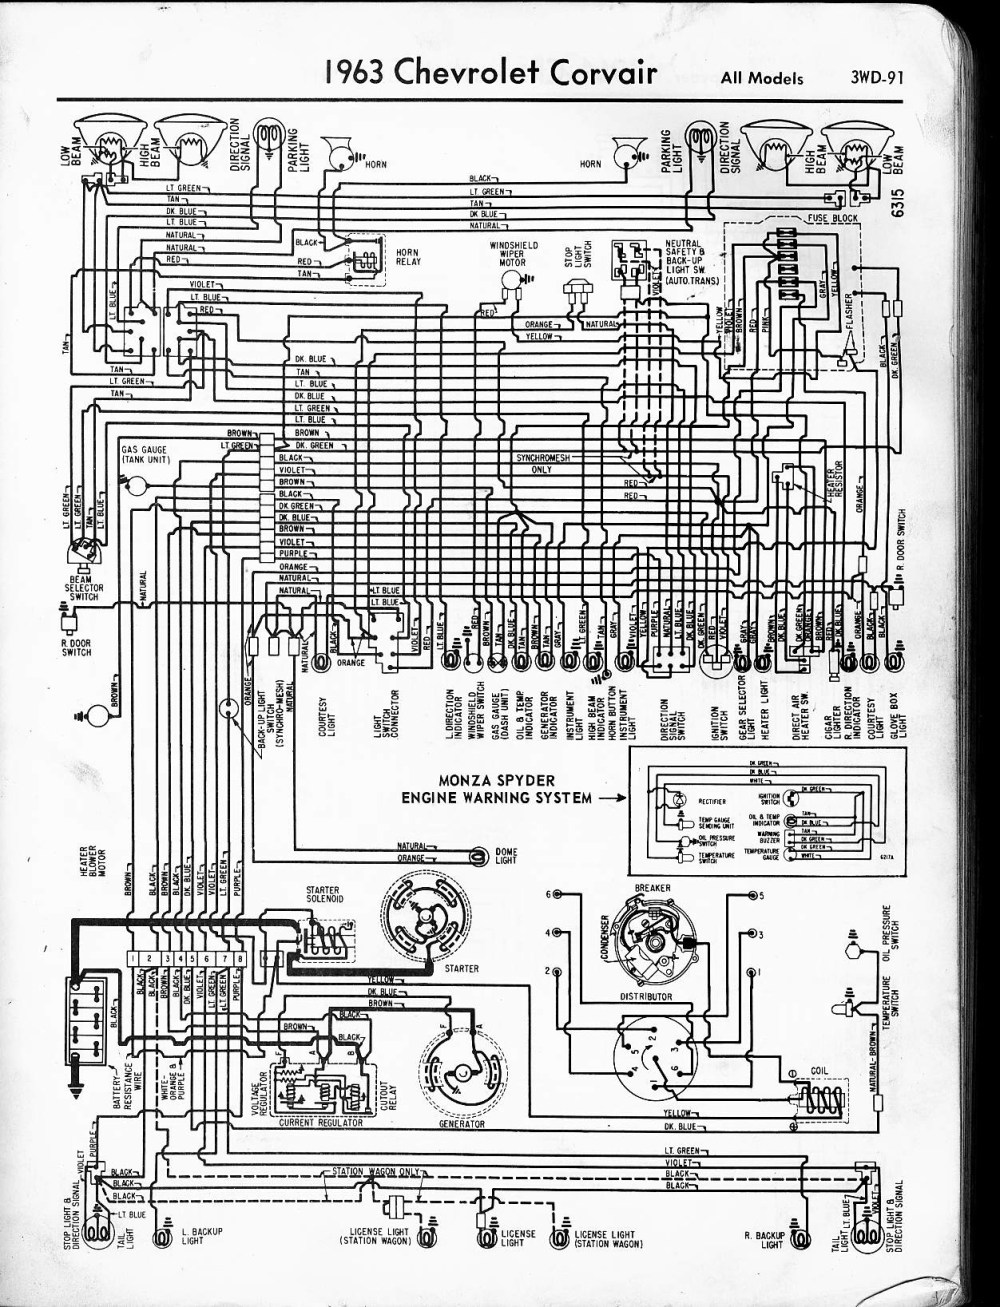 medium resolution of corvair alternator wiring diagram wiring diagram article review 1963 corvair wiring diagram wiring diagram info1963 corvair